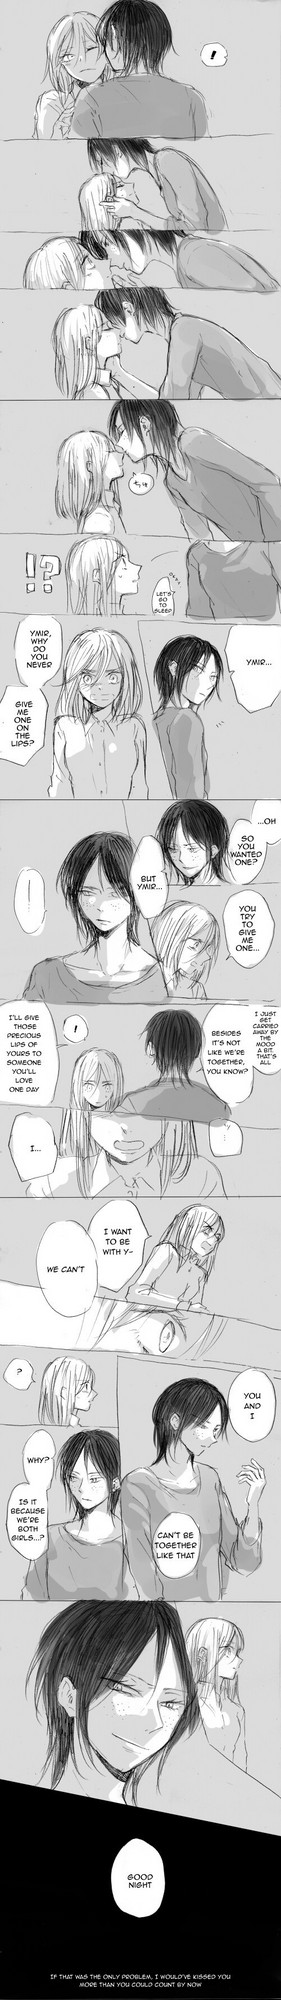 Ymir and Christa comic